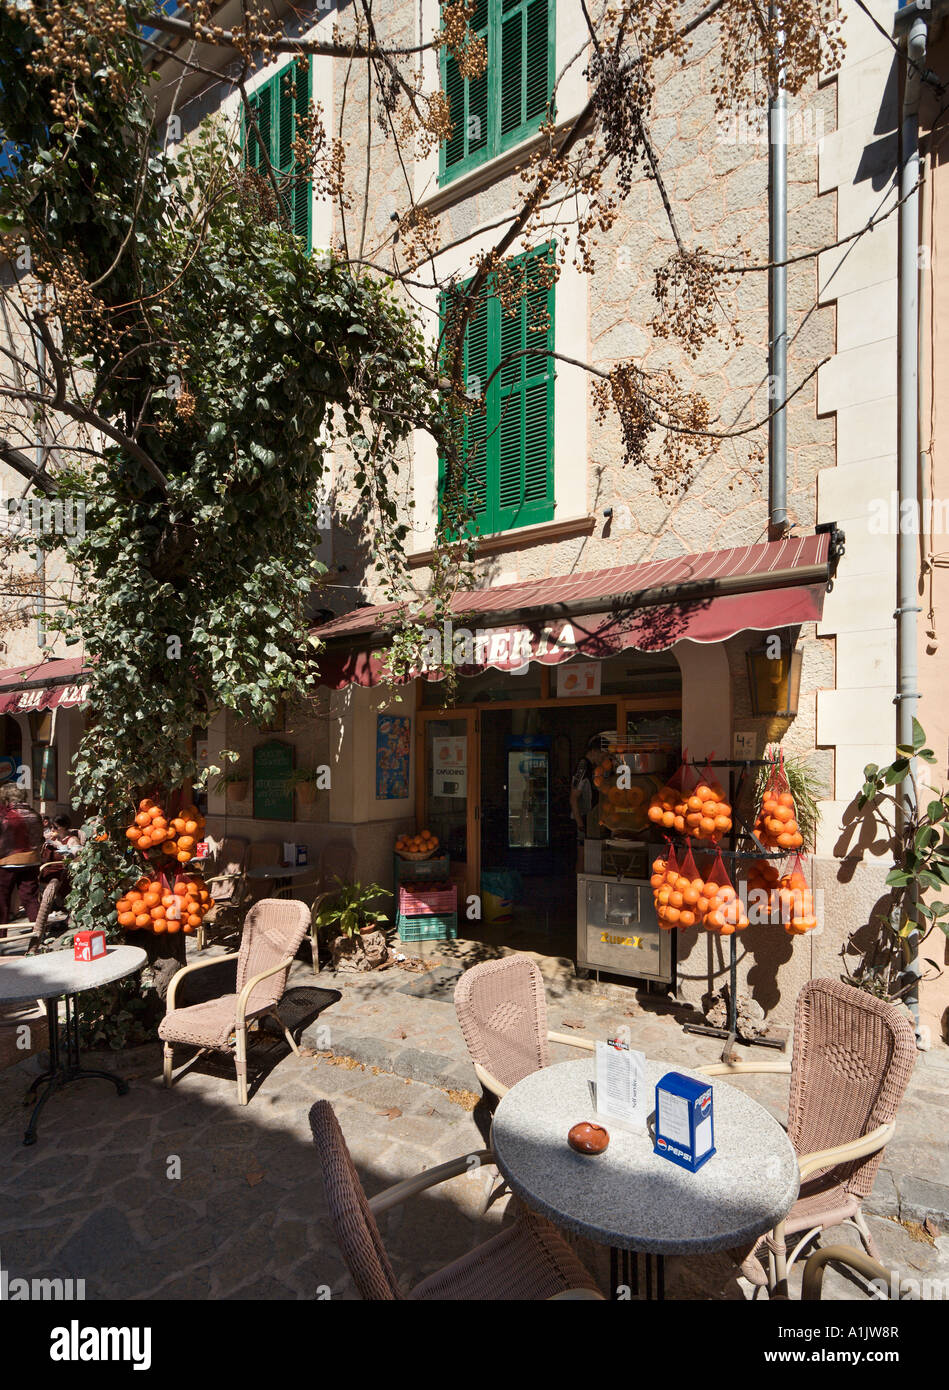 Cafe and shop in the town centre, Valldemossa, Mallorca, Balearic Islands, Spain - Stock Image